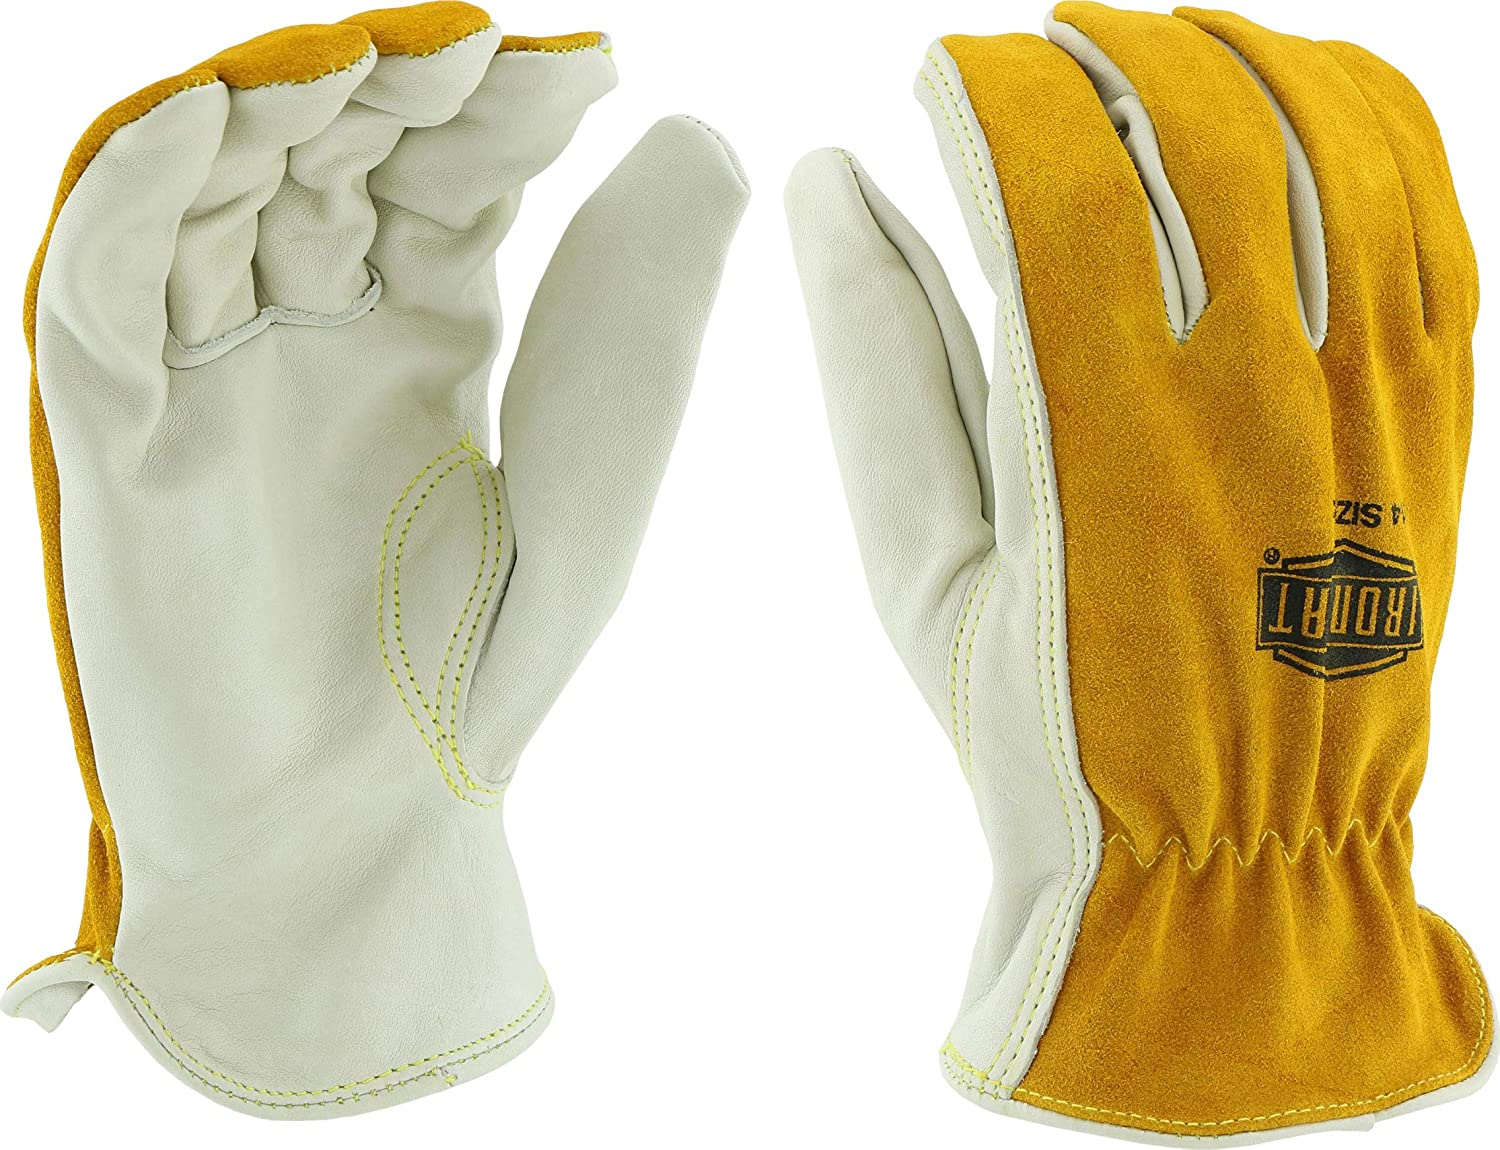 West Chester IRONCAT 9414 Premium Grain/Split Cowhide Leather Driver Work Gloves: Tan/Grey, X-Large, 1 Pair